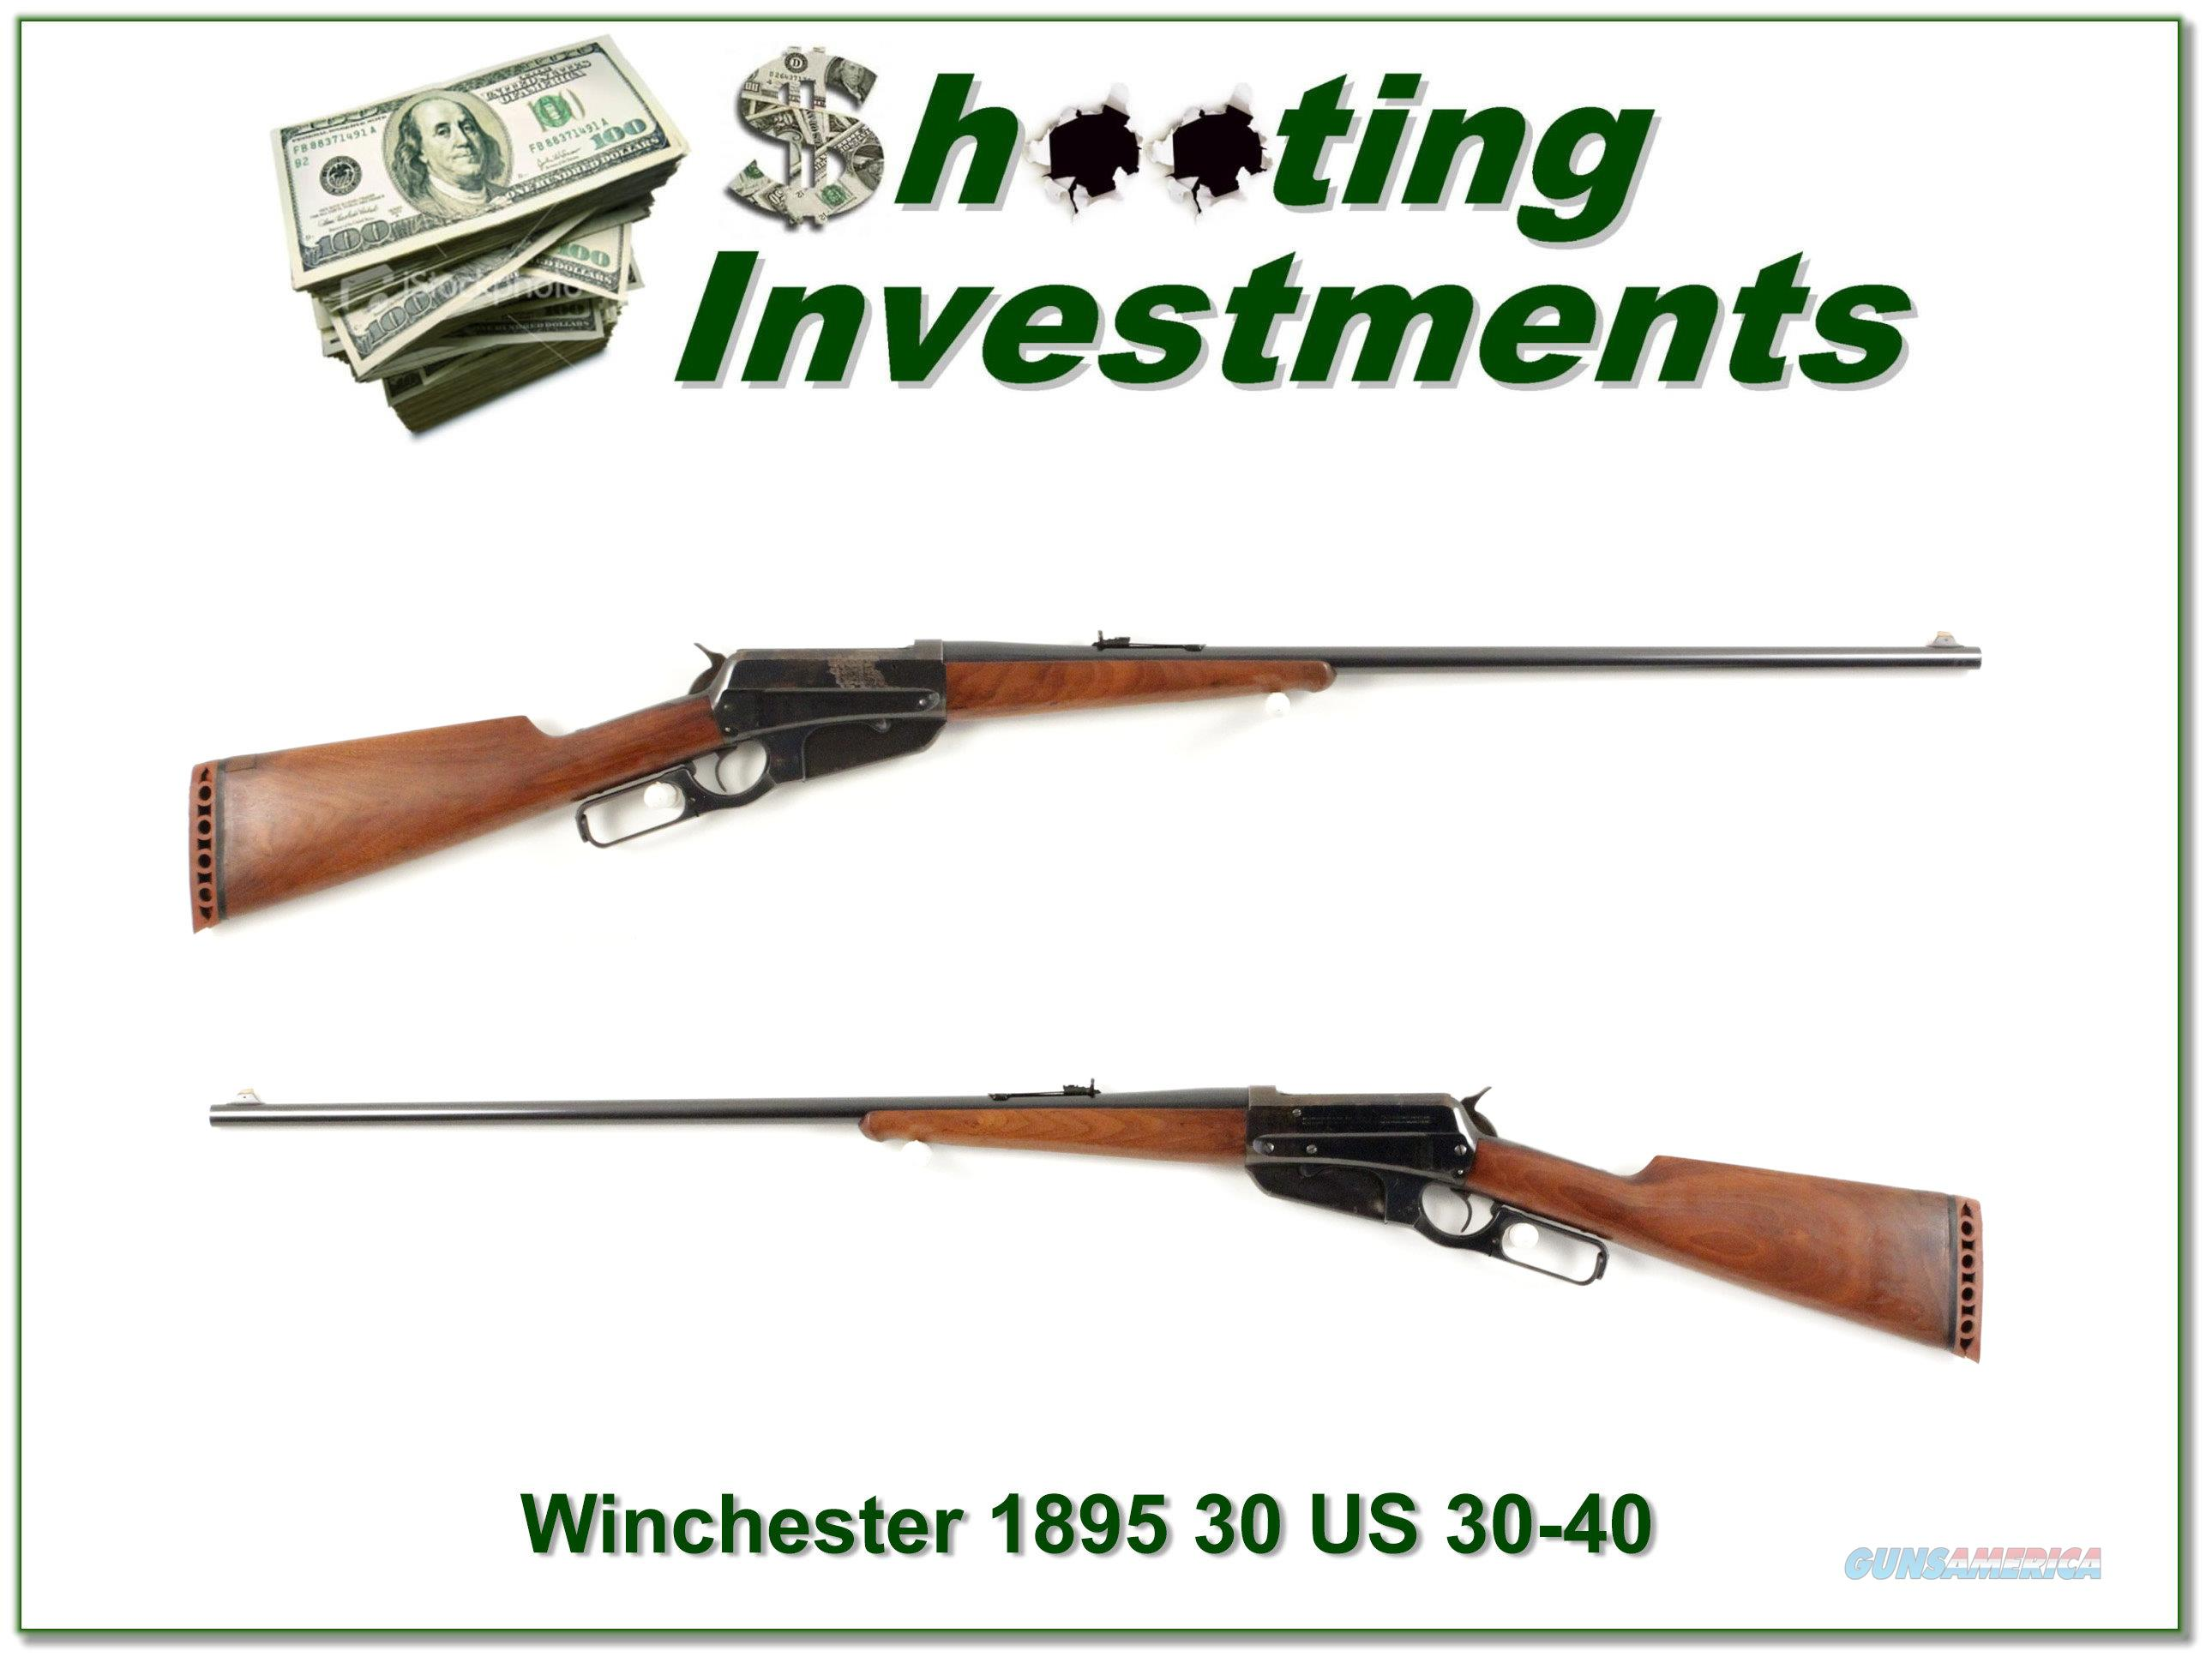 Winchester 1895 30 US made in 1900 (30-40 Krag)  Guns > Rifles > Winchester Rifles - Pre-1899 Lever